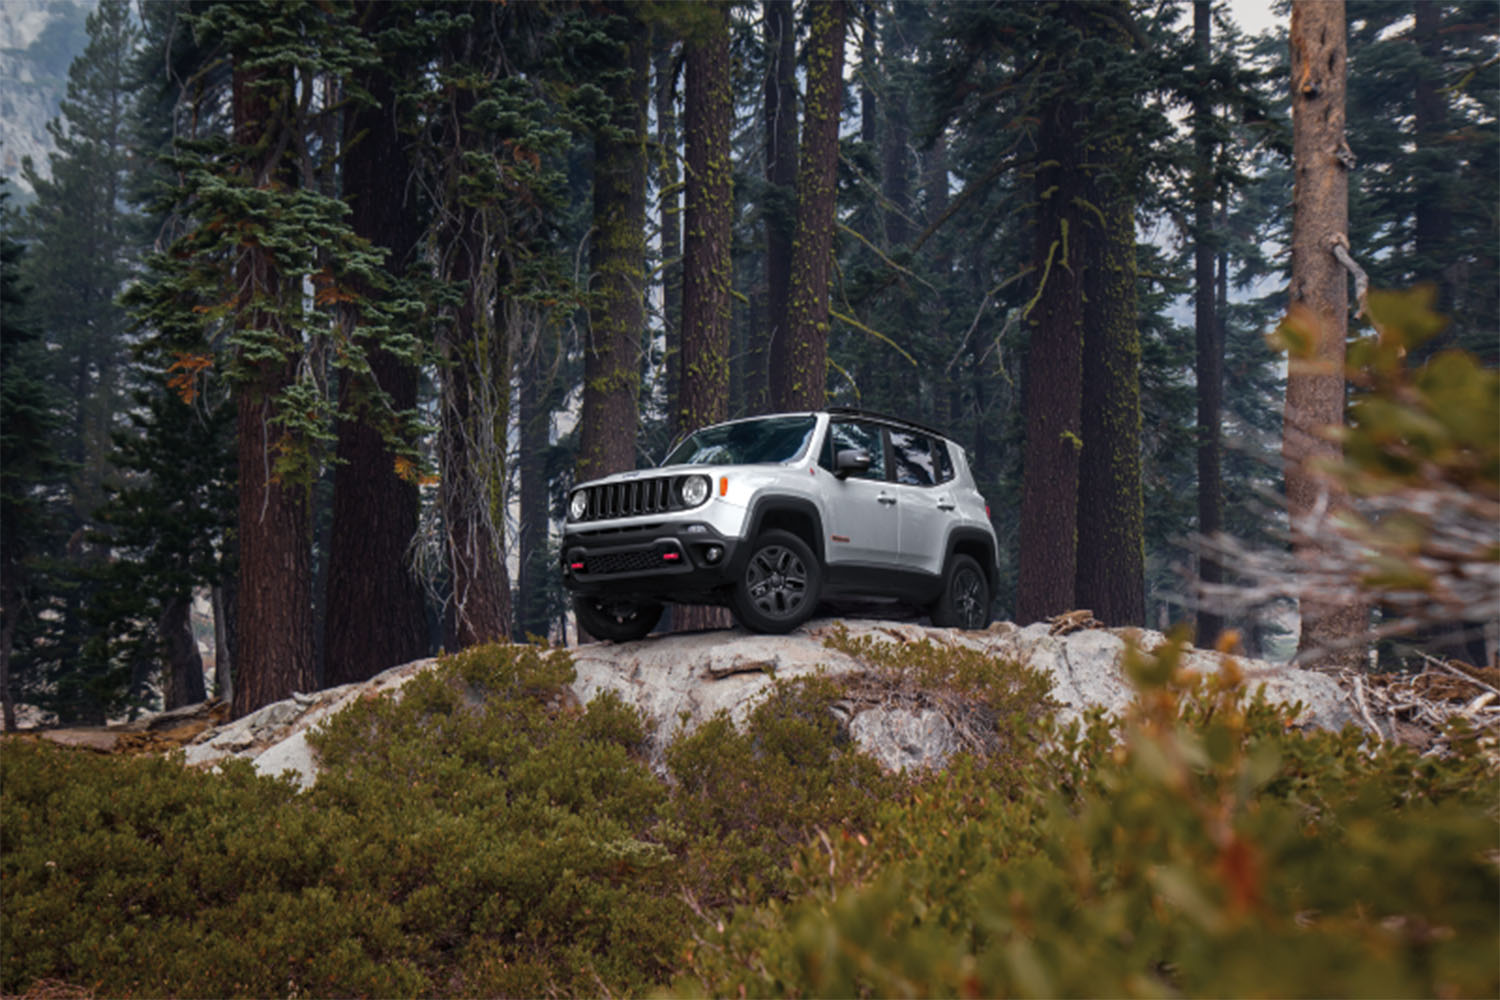 Jeep Renegades available in Louisville, KY at Oxmoor Chrysler Jeep Dodge Ram